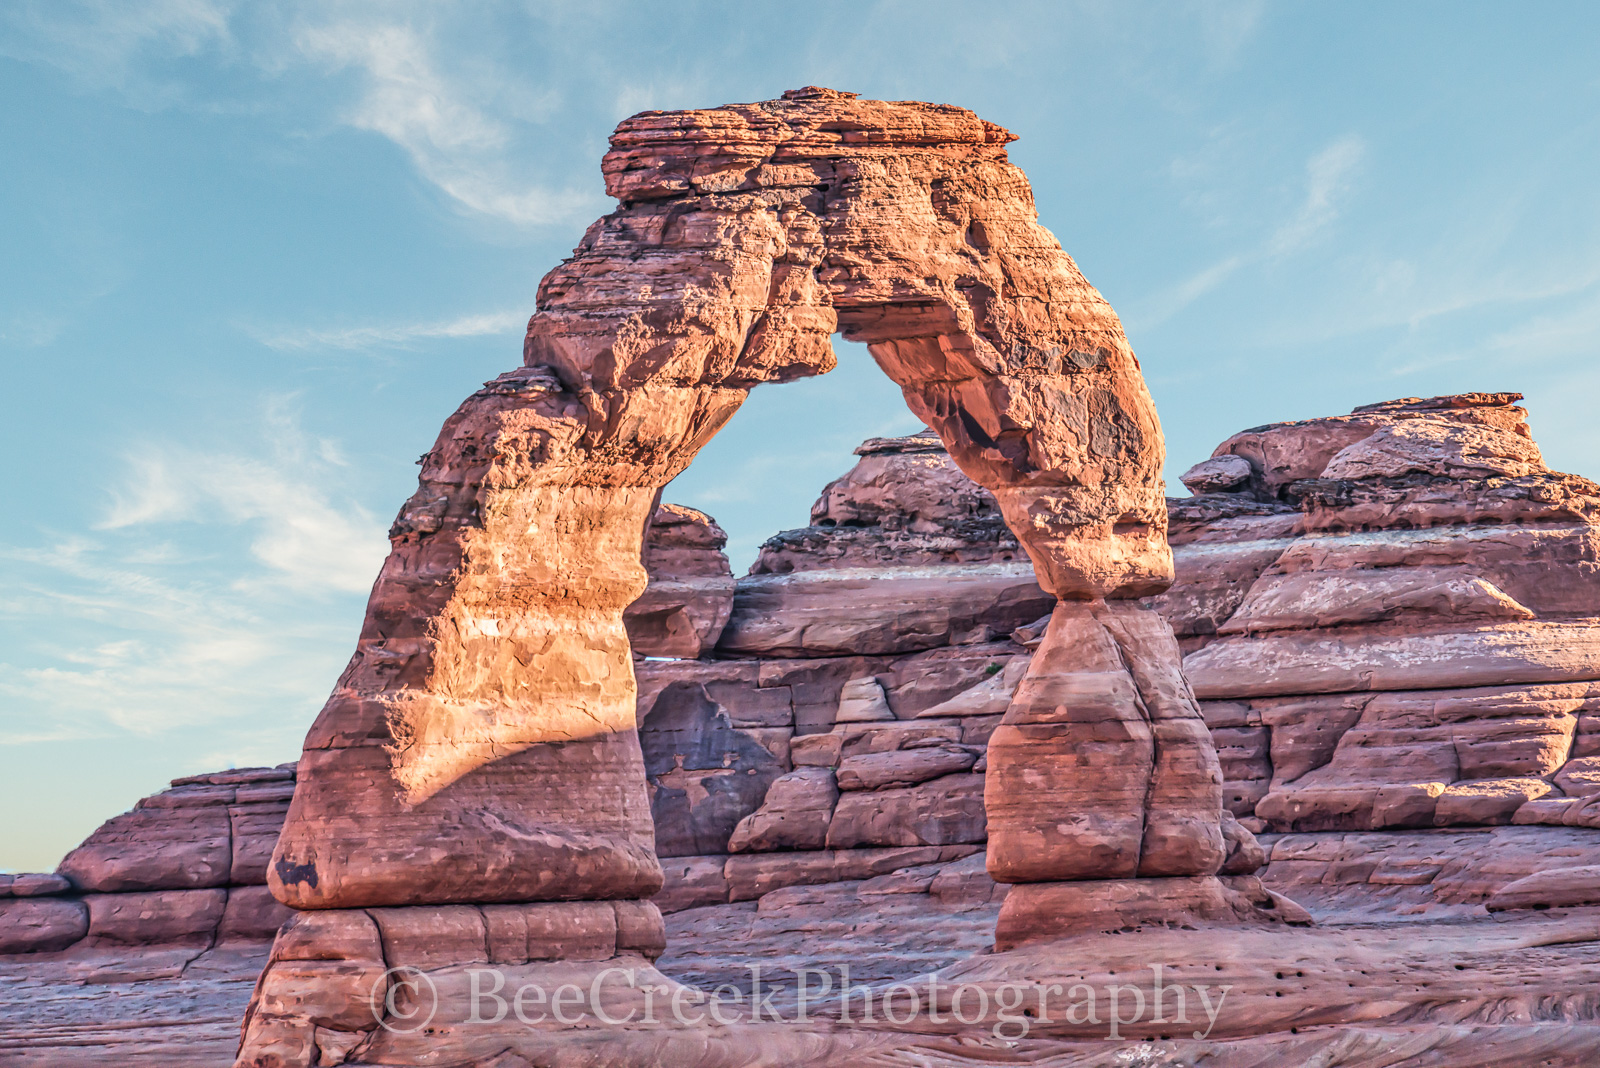 Arches National Park, Delicate Arch, UT, images of Arches National Park, images of delicate arch, moab, photos of delicate arch, photo